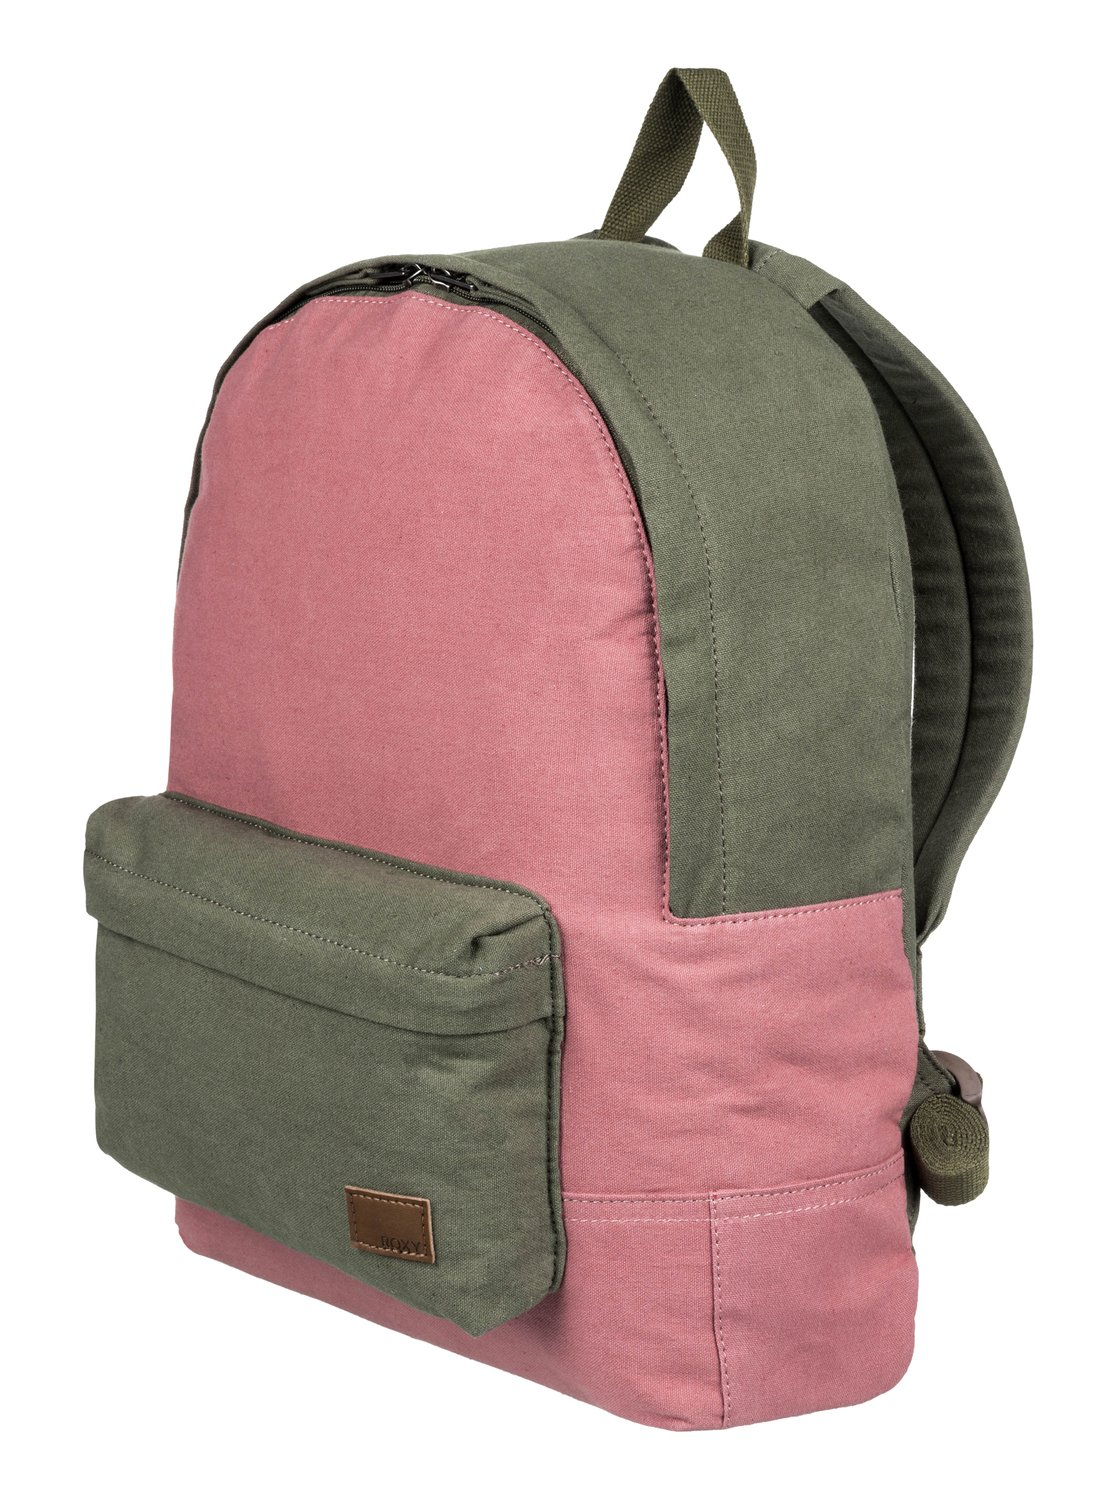 b40fef34736b Roxy™ Sugar Baby Canvas Colorblock 16L - Small Backpack - Women